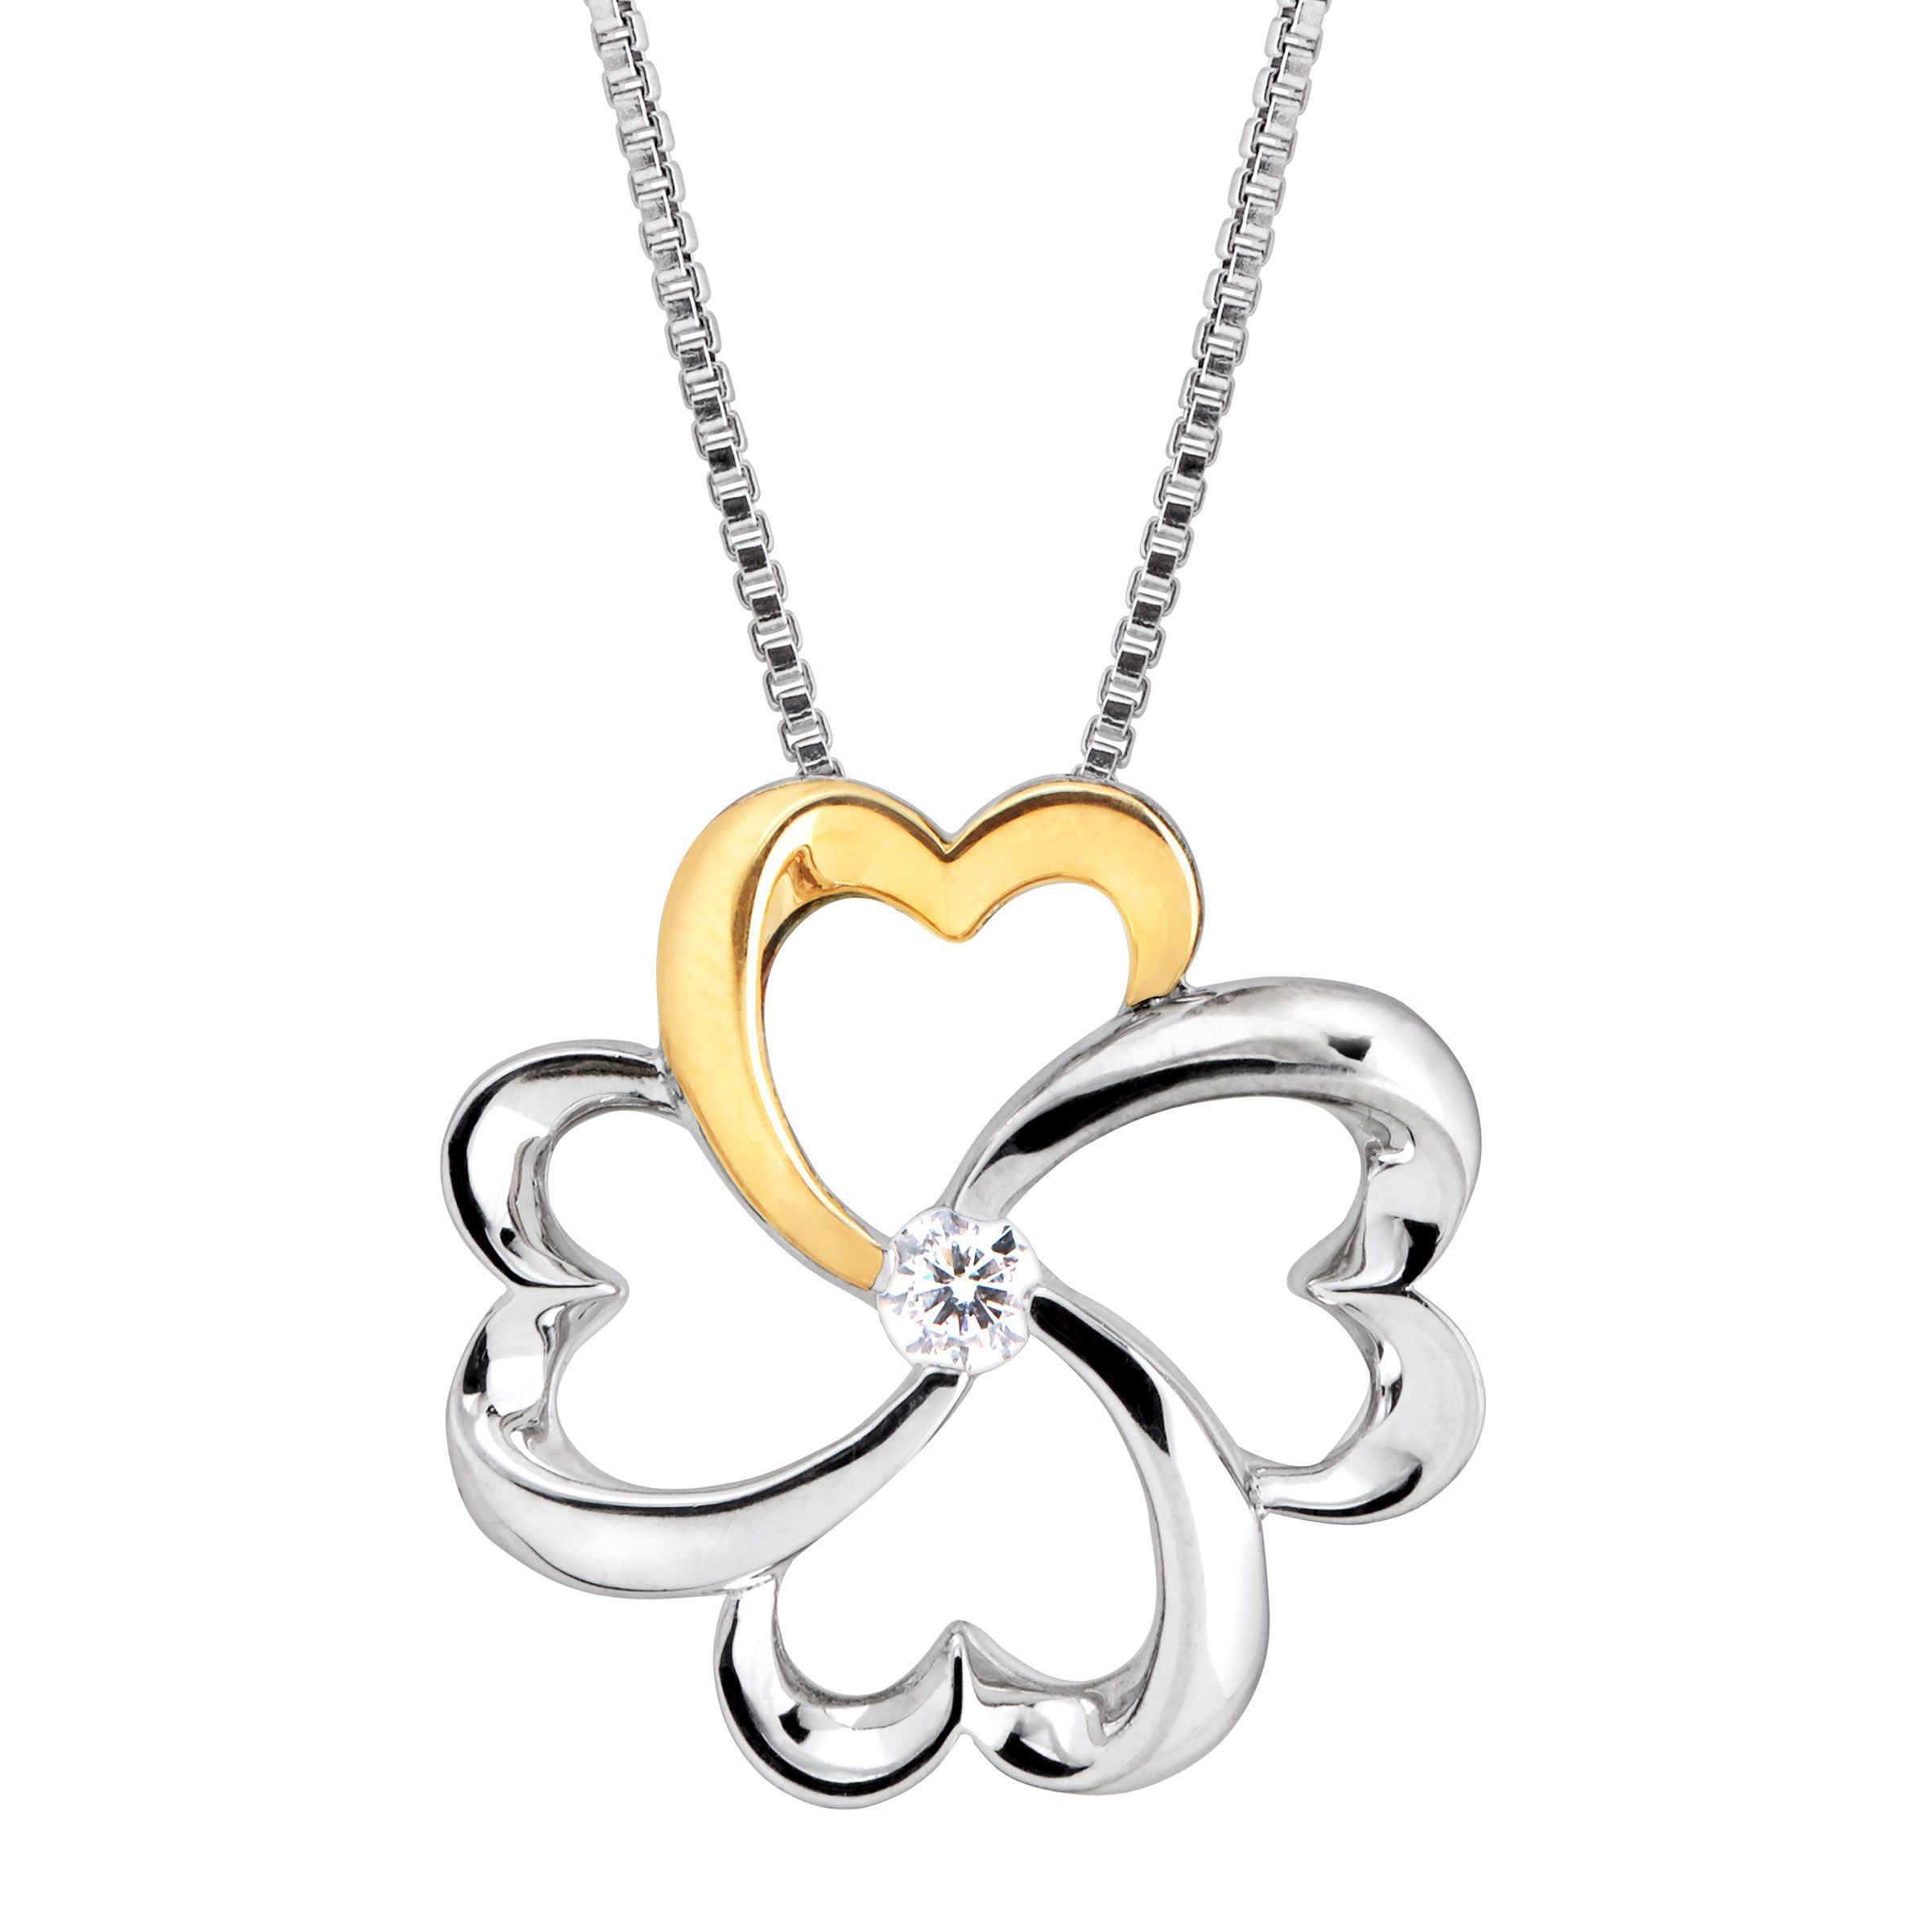 r leaf m products resistant four pendant rhodium plated clover necklace tarnish